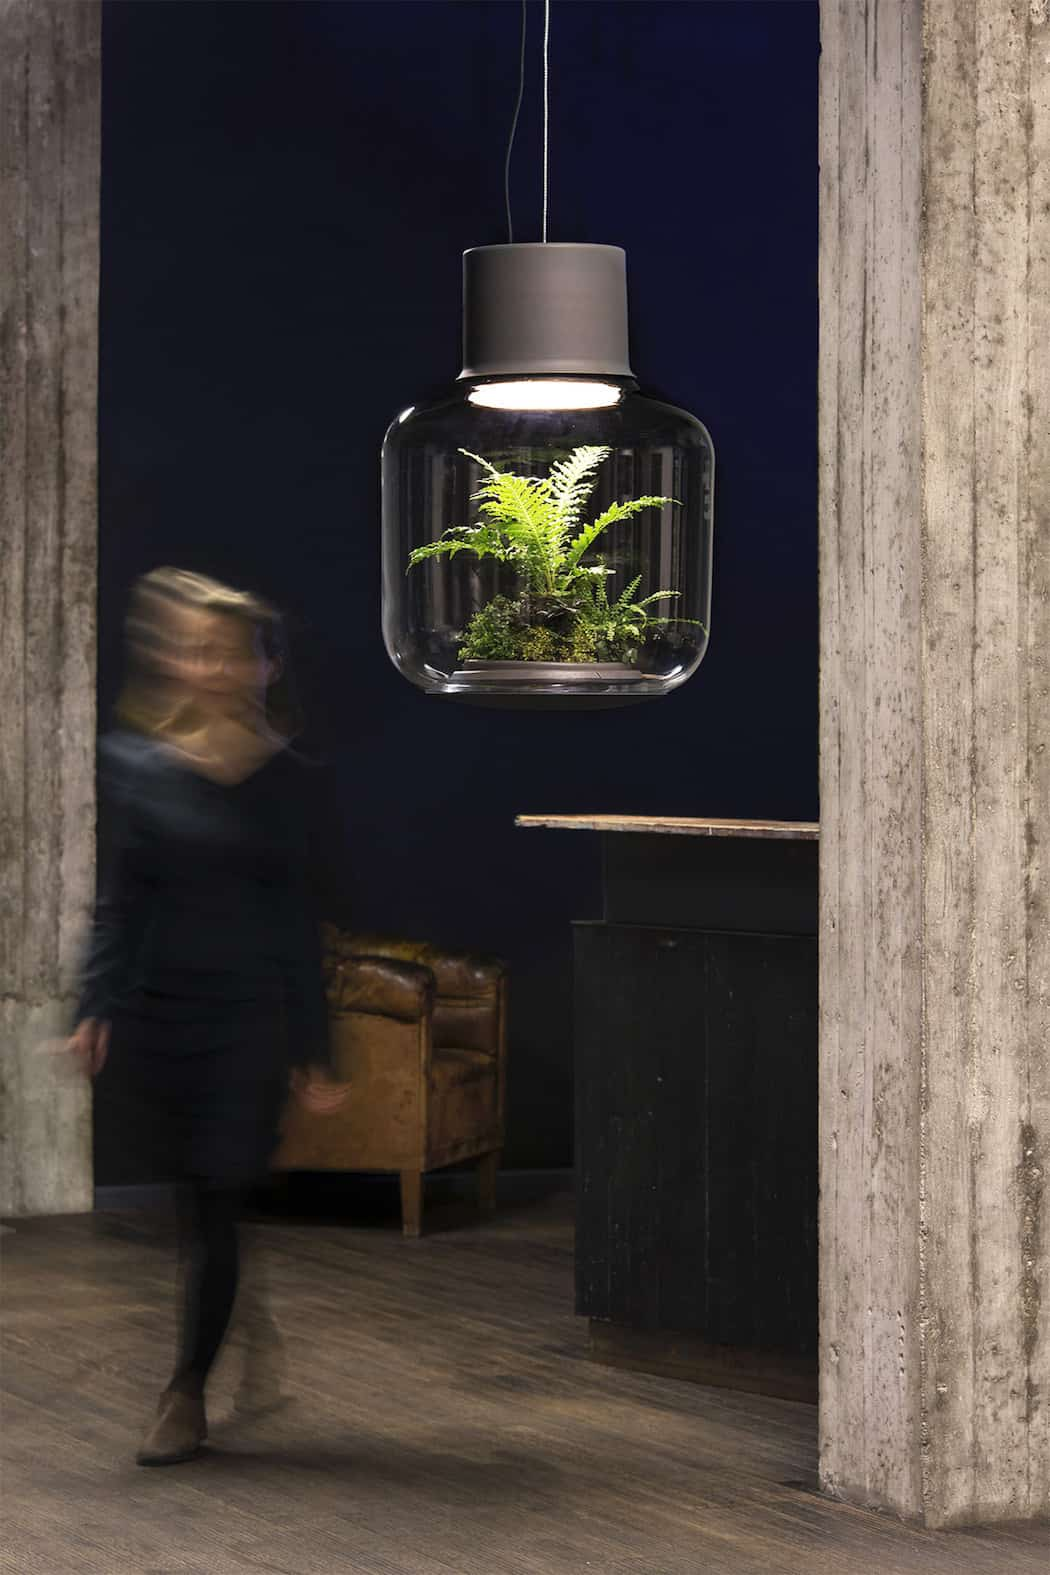 Self Contained Ecosystems Amazing Light Fixtures With